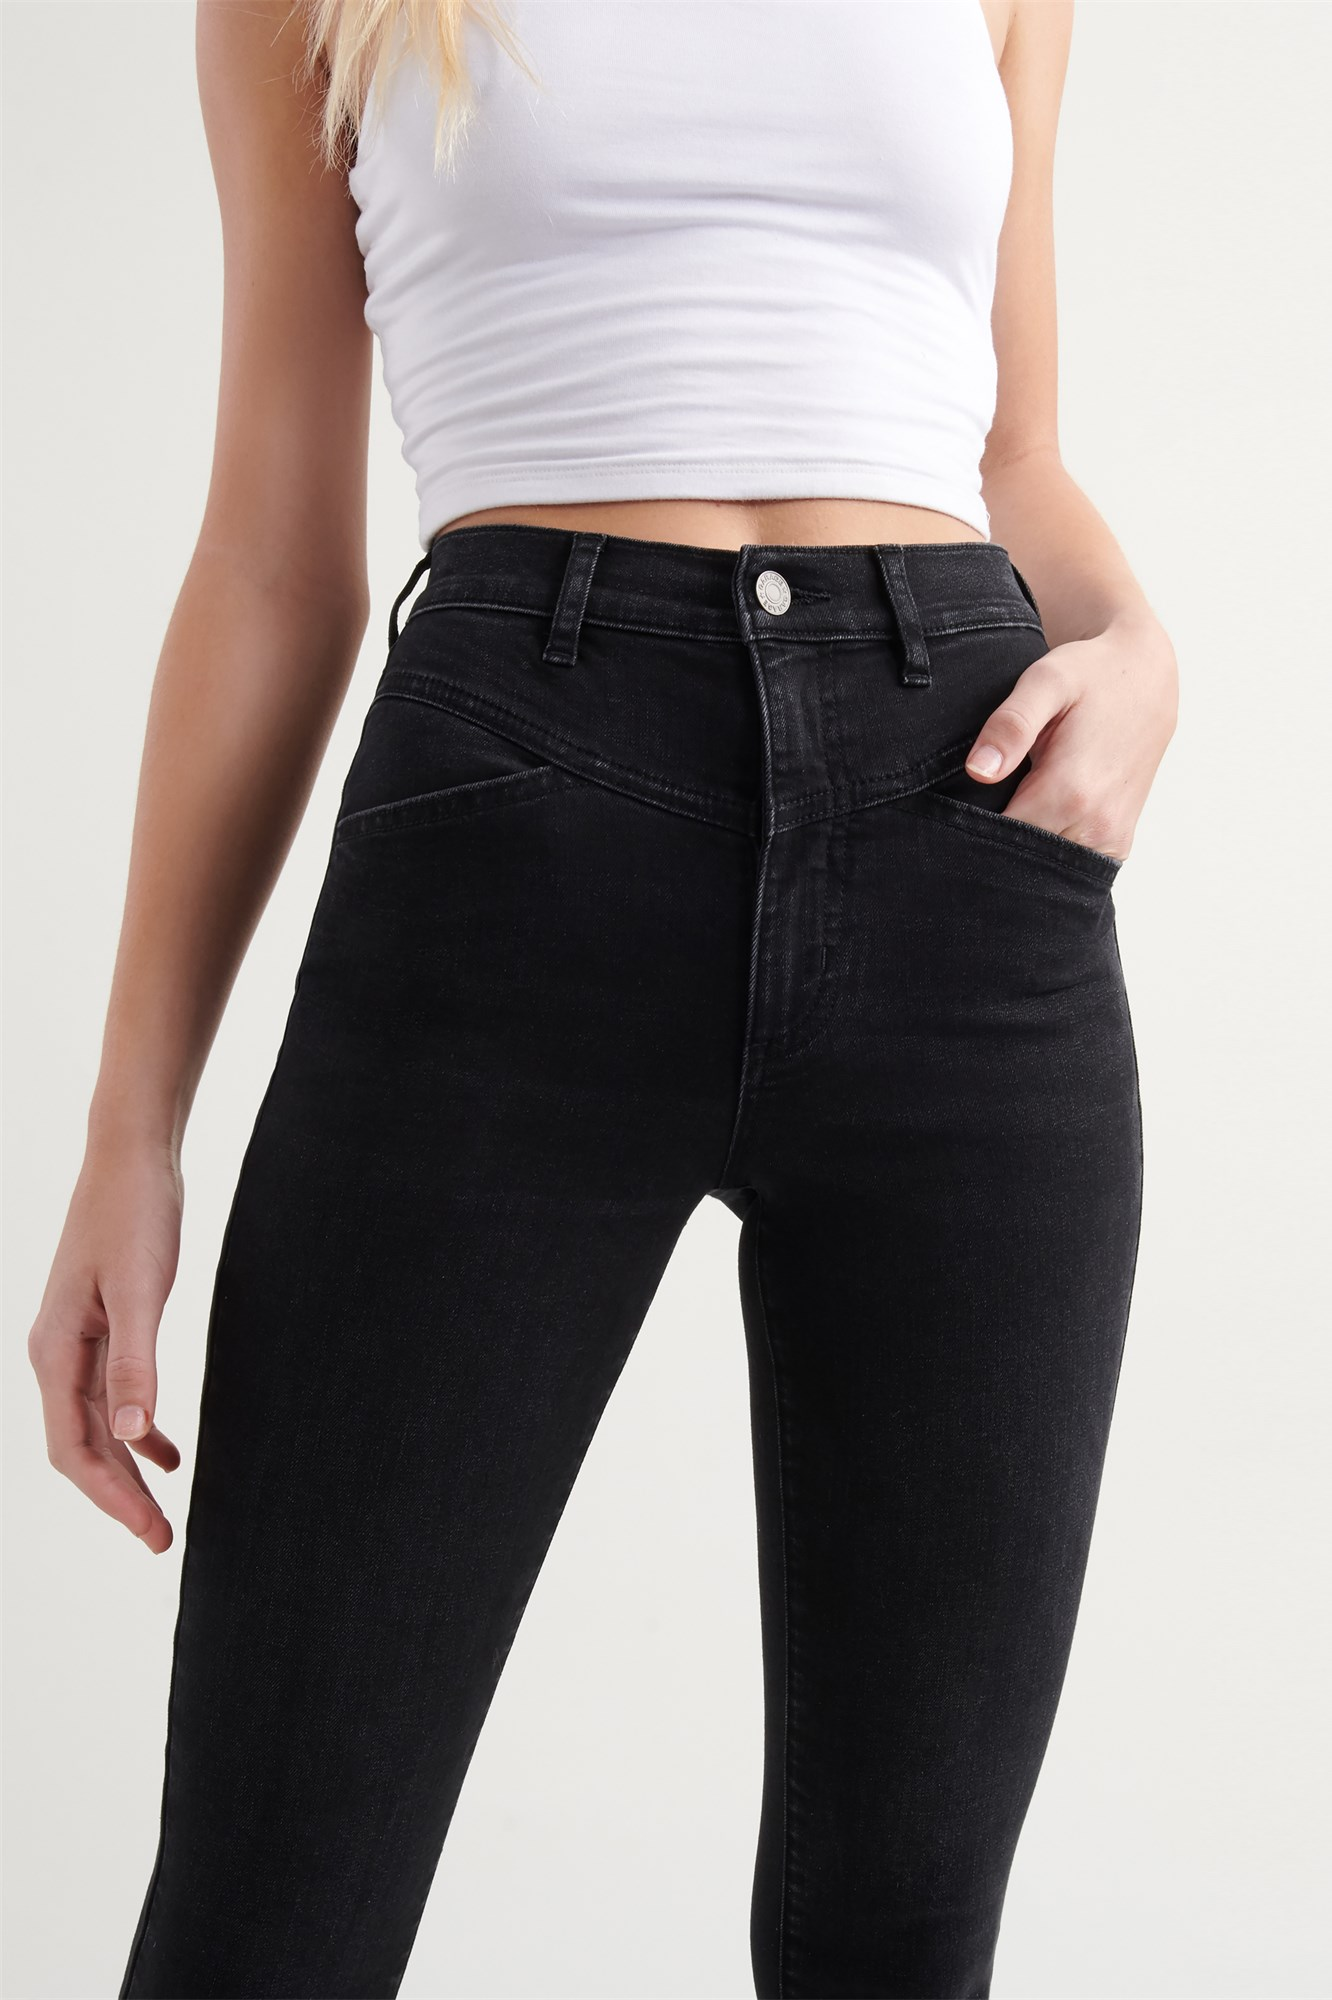 Image 2 of Ultra High Rise Jegging